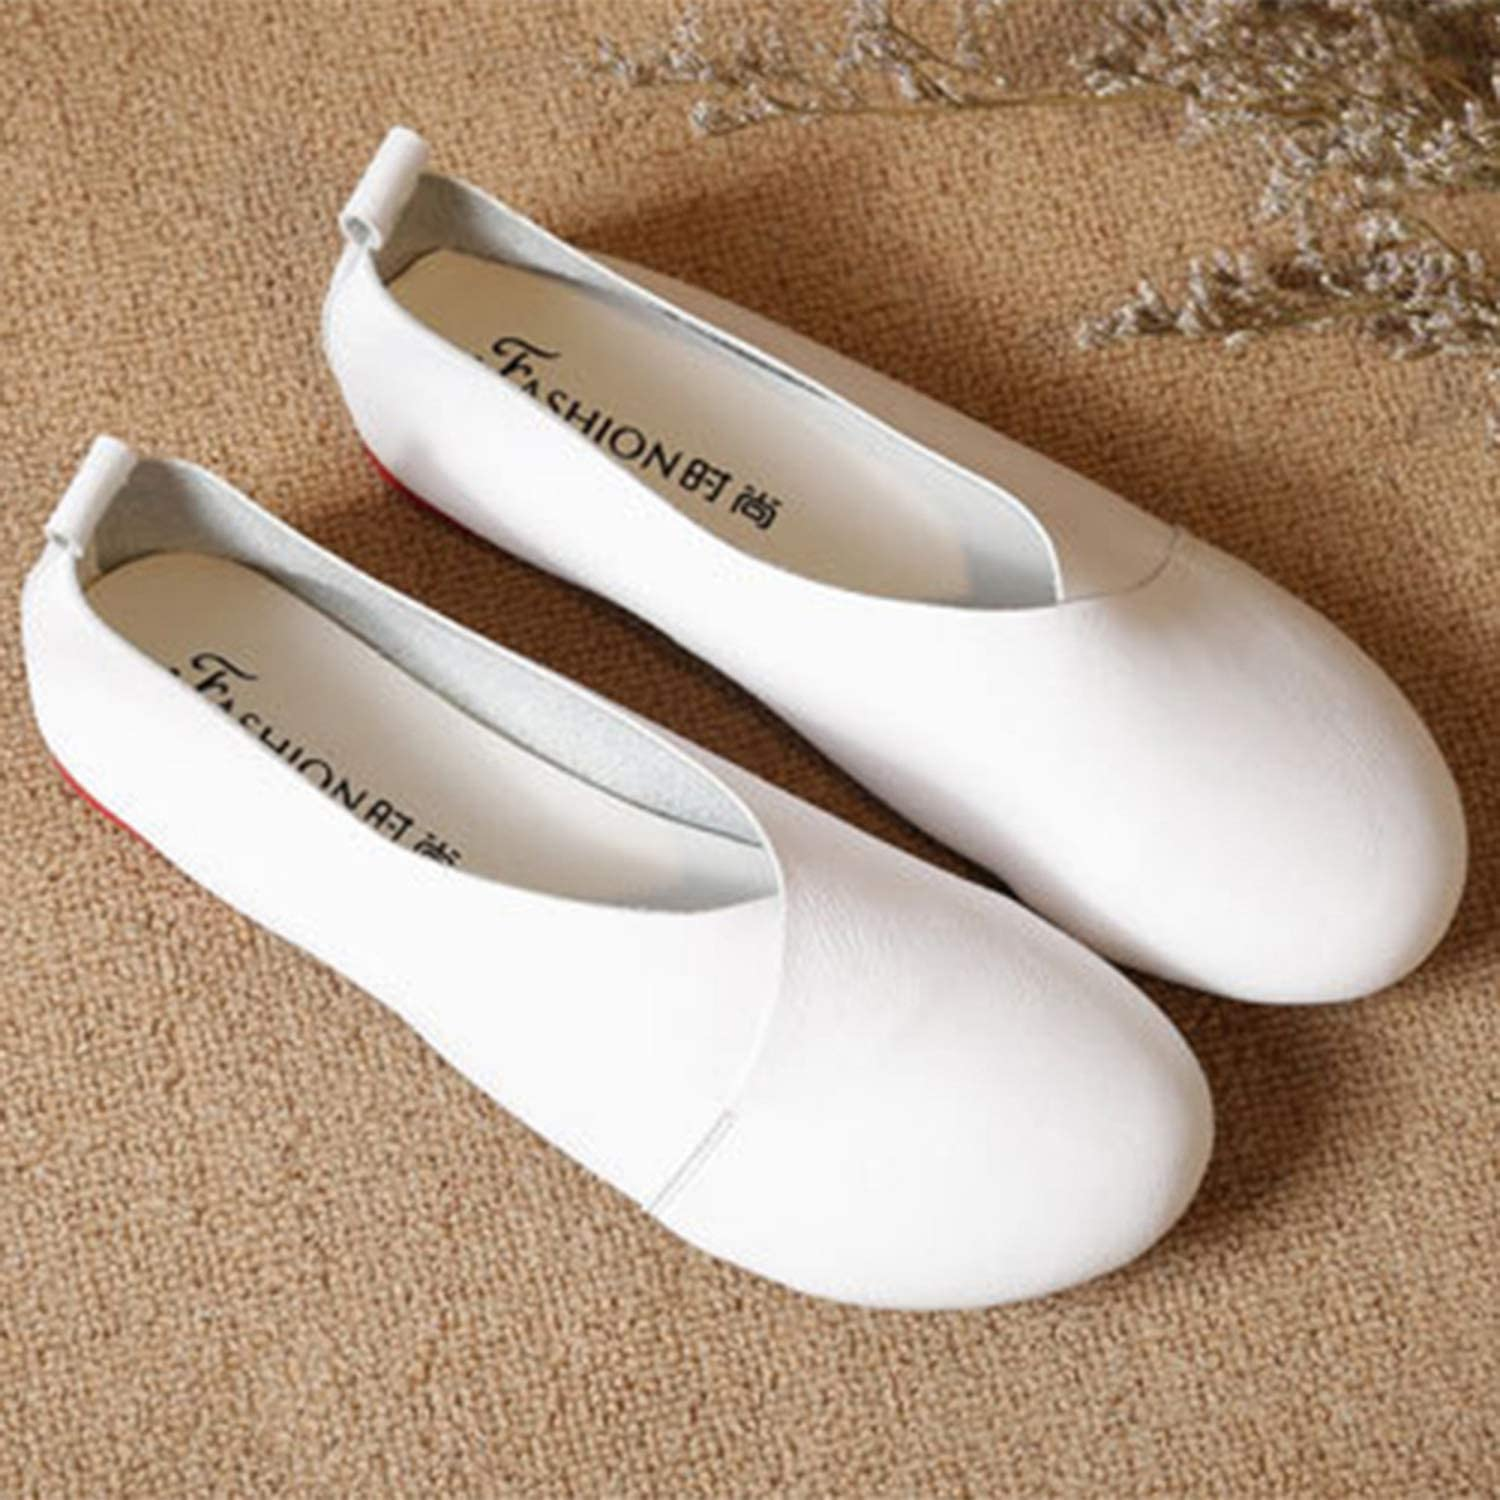 Welcometoo 2019 Genuine Leather Flat shoes Woman Hand-Sewn Leather Loafers Cowhide Flexible Spring Casual shoes Women Flats Women shoes